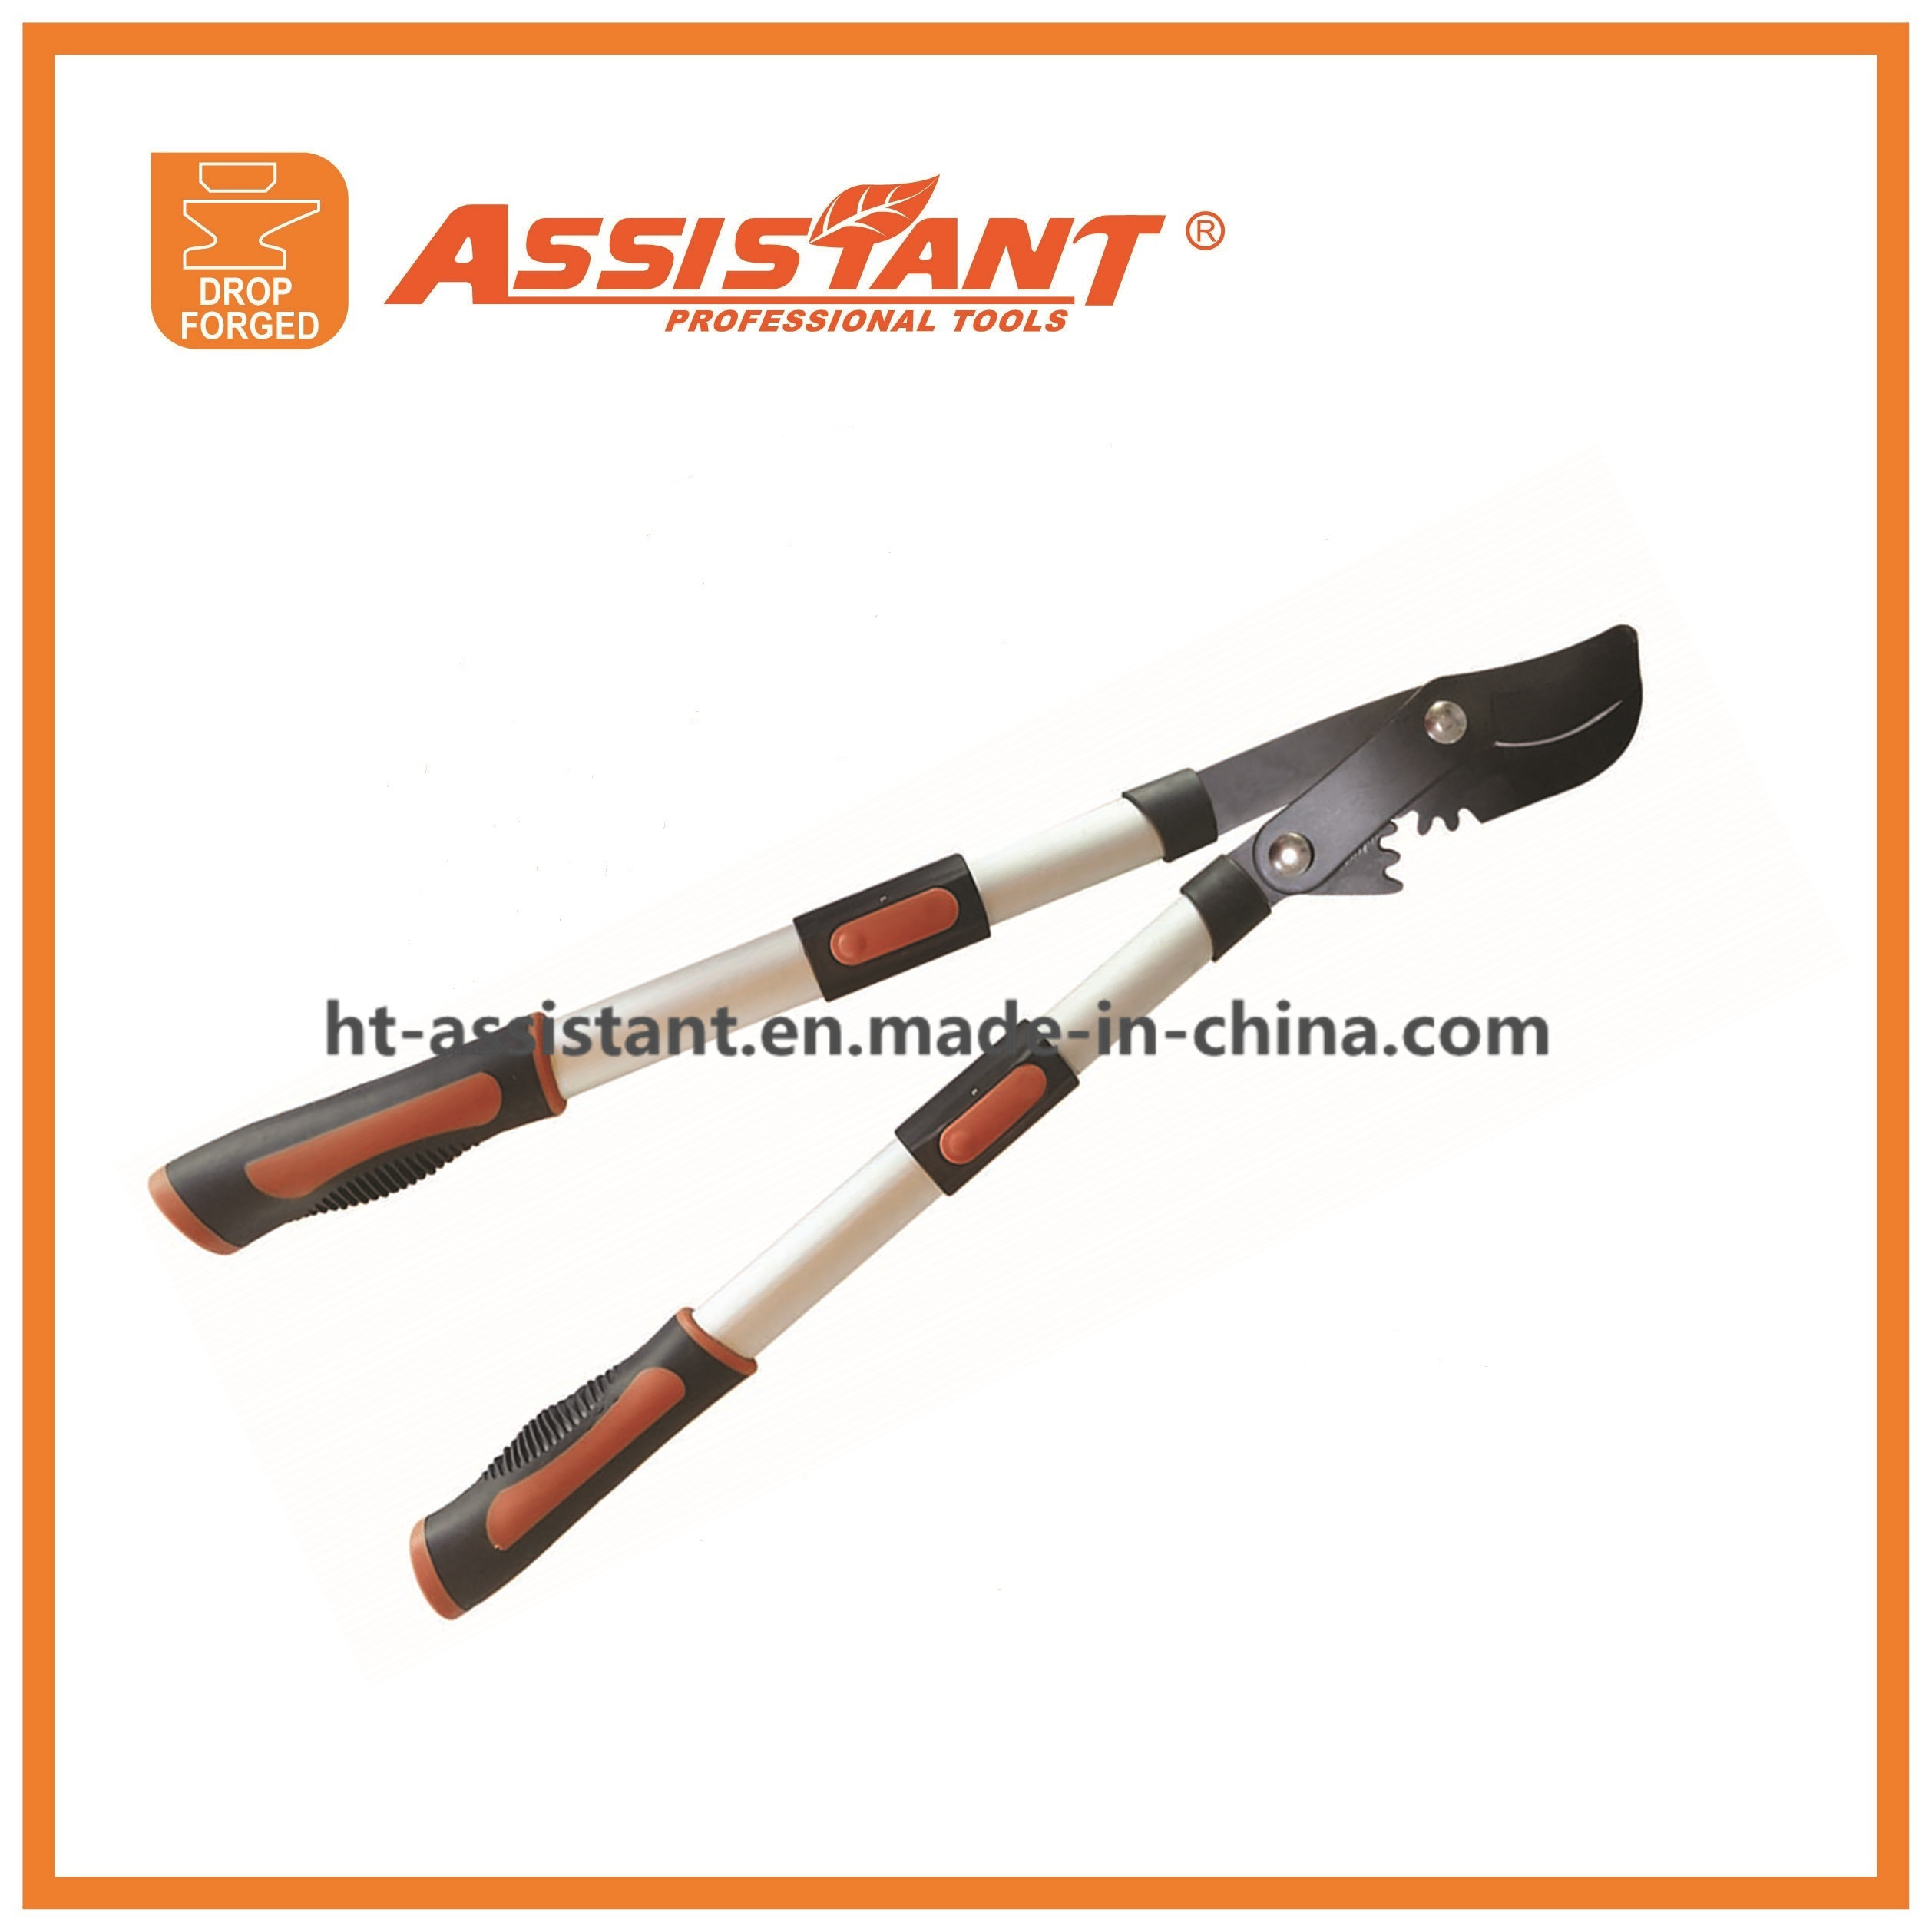 Razorsharp Heavy Duty Telescopic Ratchet Anvil Loppers